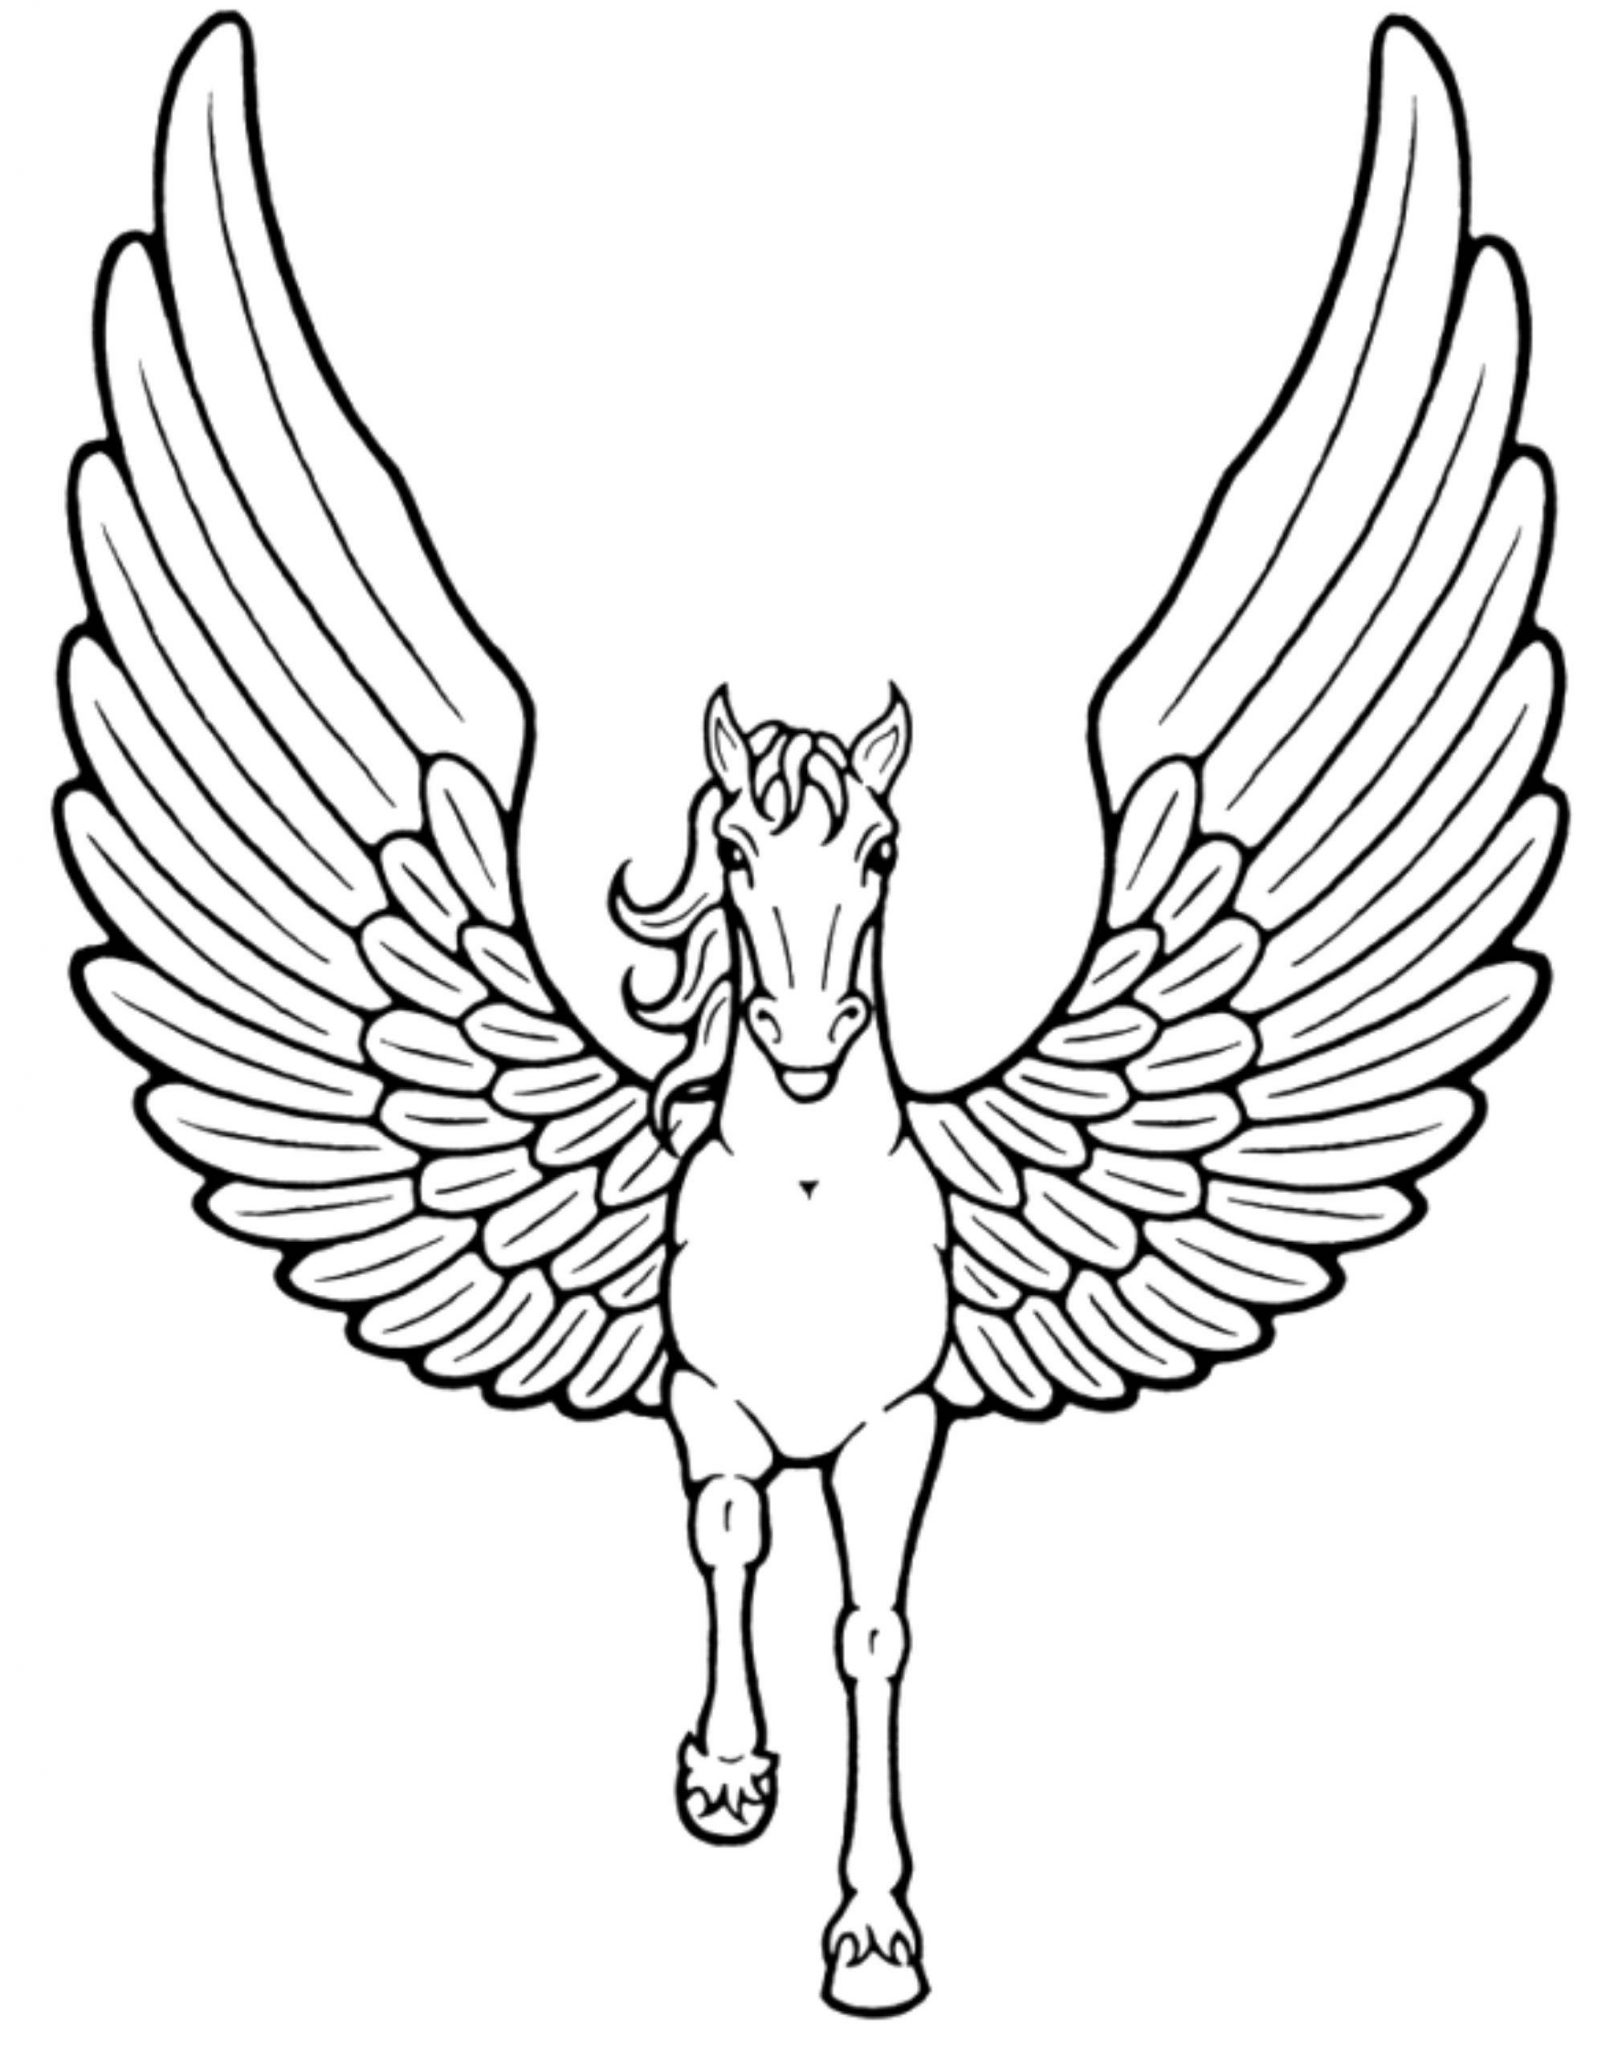 Coloring Pages For Unicorns : Print download unicorn coloring pages for children